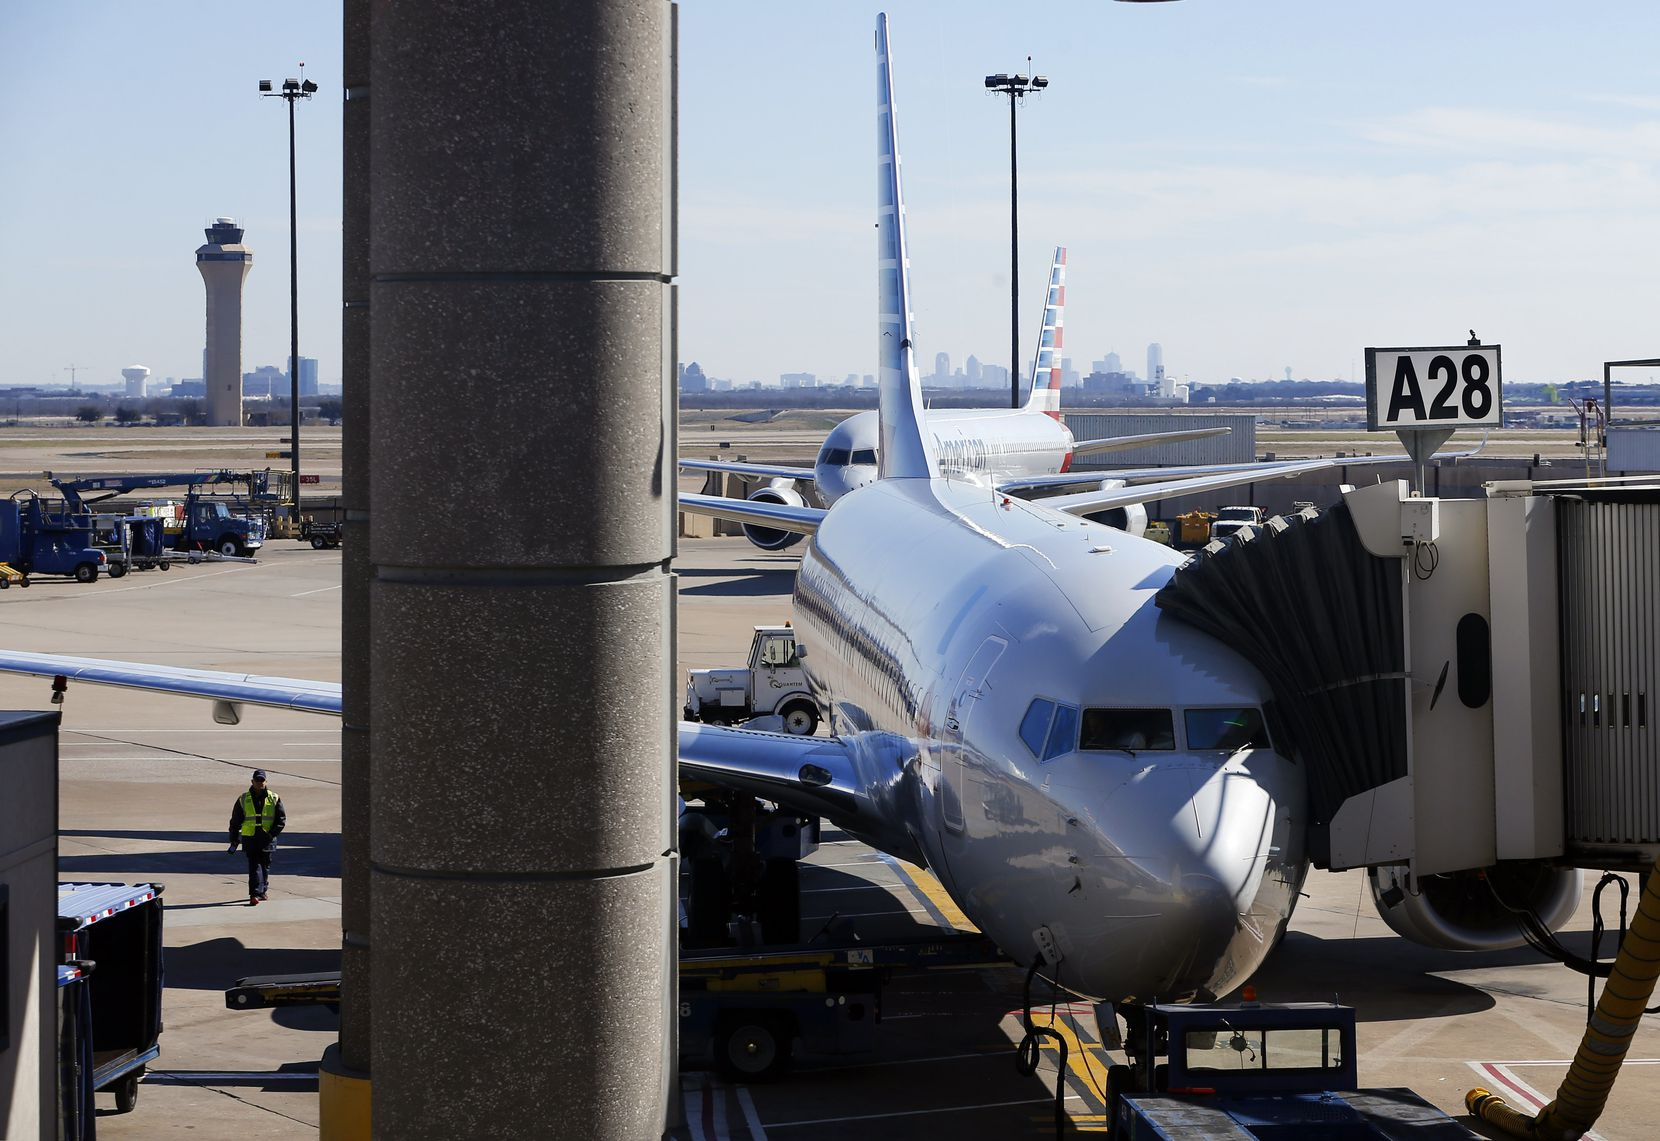 An American Airlines plane is parked at a Terminal A gate at Dallas-Fort Worth International Airport.